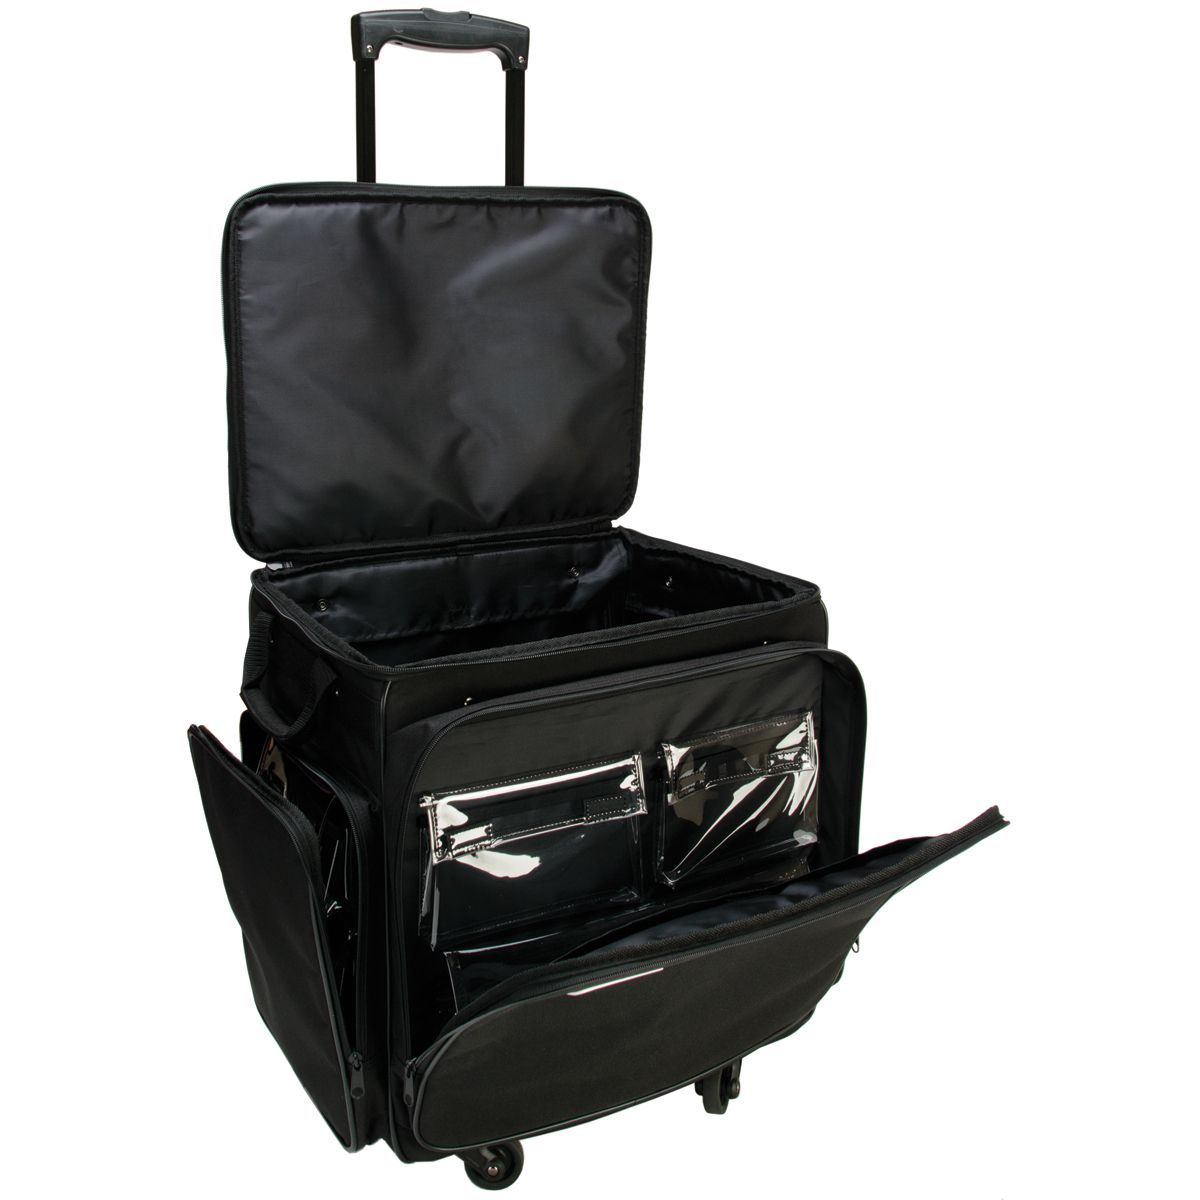 Papermania craft tote - Gogo 300 Arts And Crafts Black Spinner Upright Tote Bag